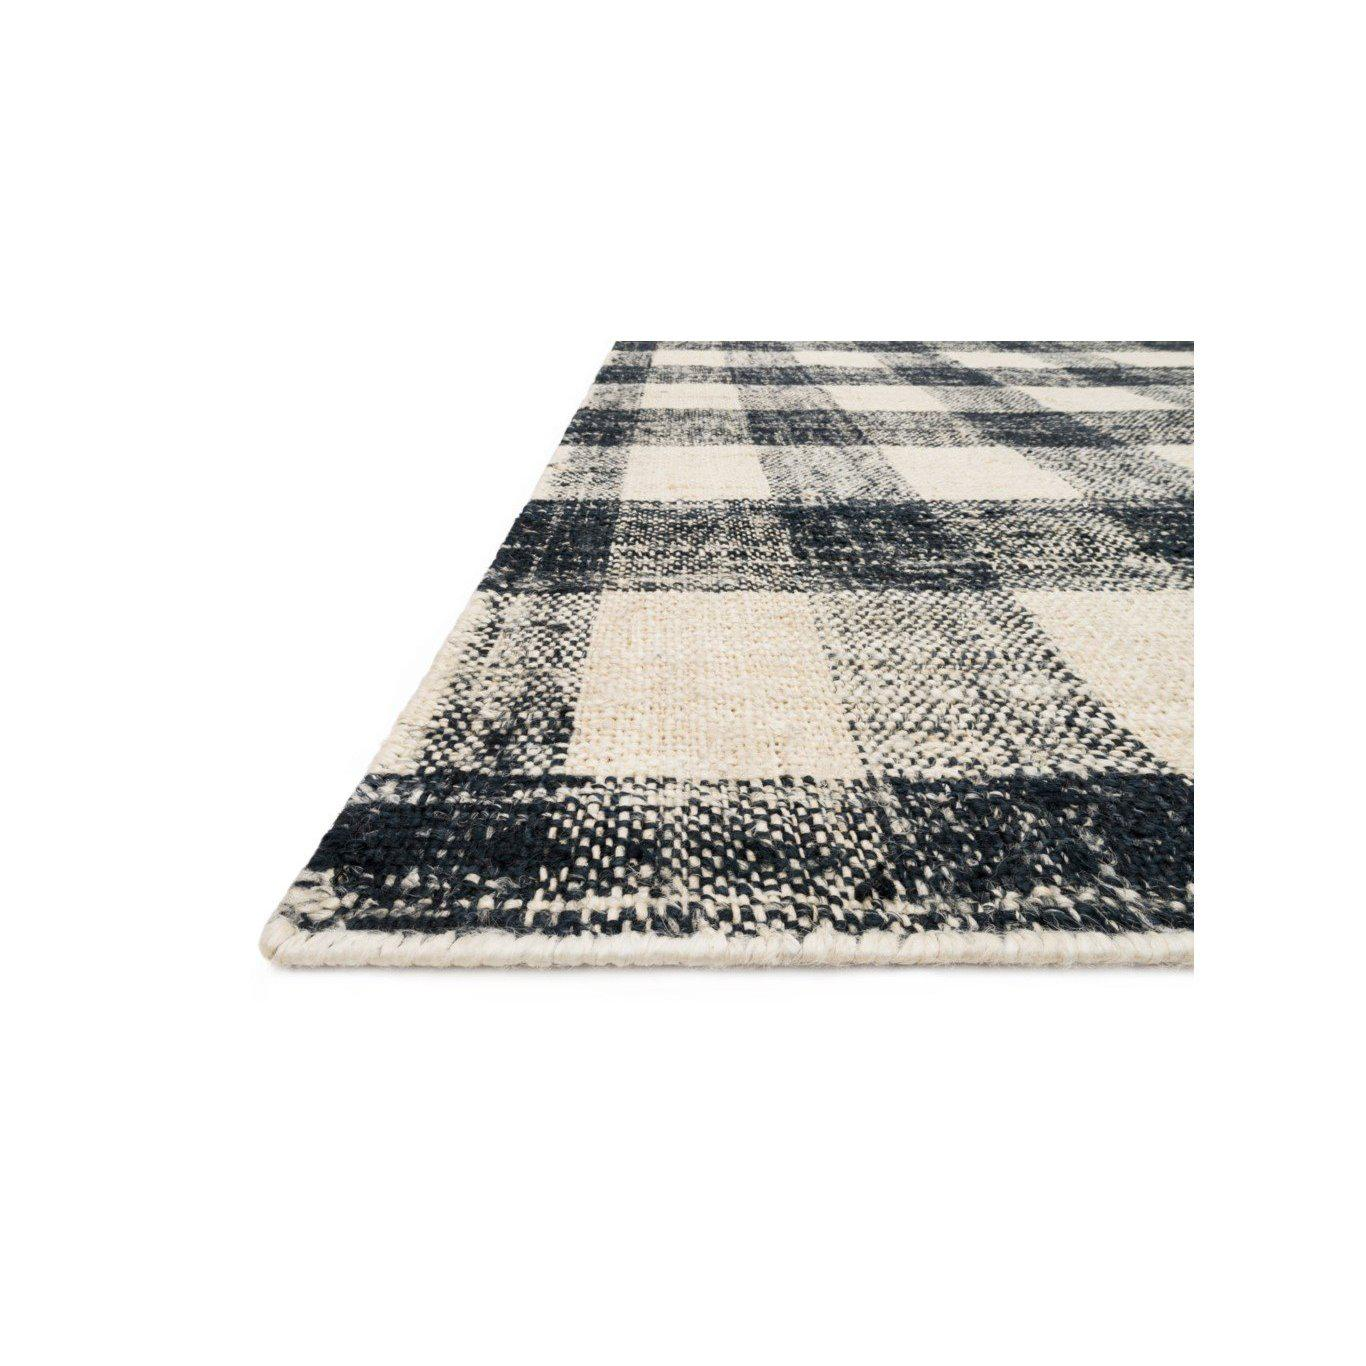 Joanna Gaines Crew Rug Collection - CRE-02 Black/Natural-Loloi Rugs-Blue Hand Home